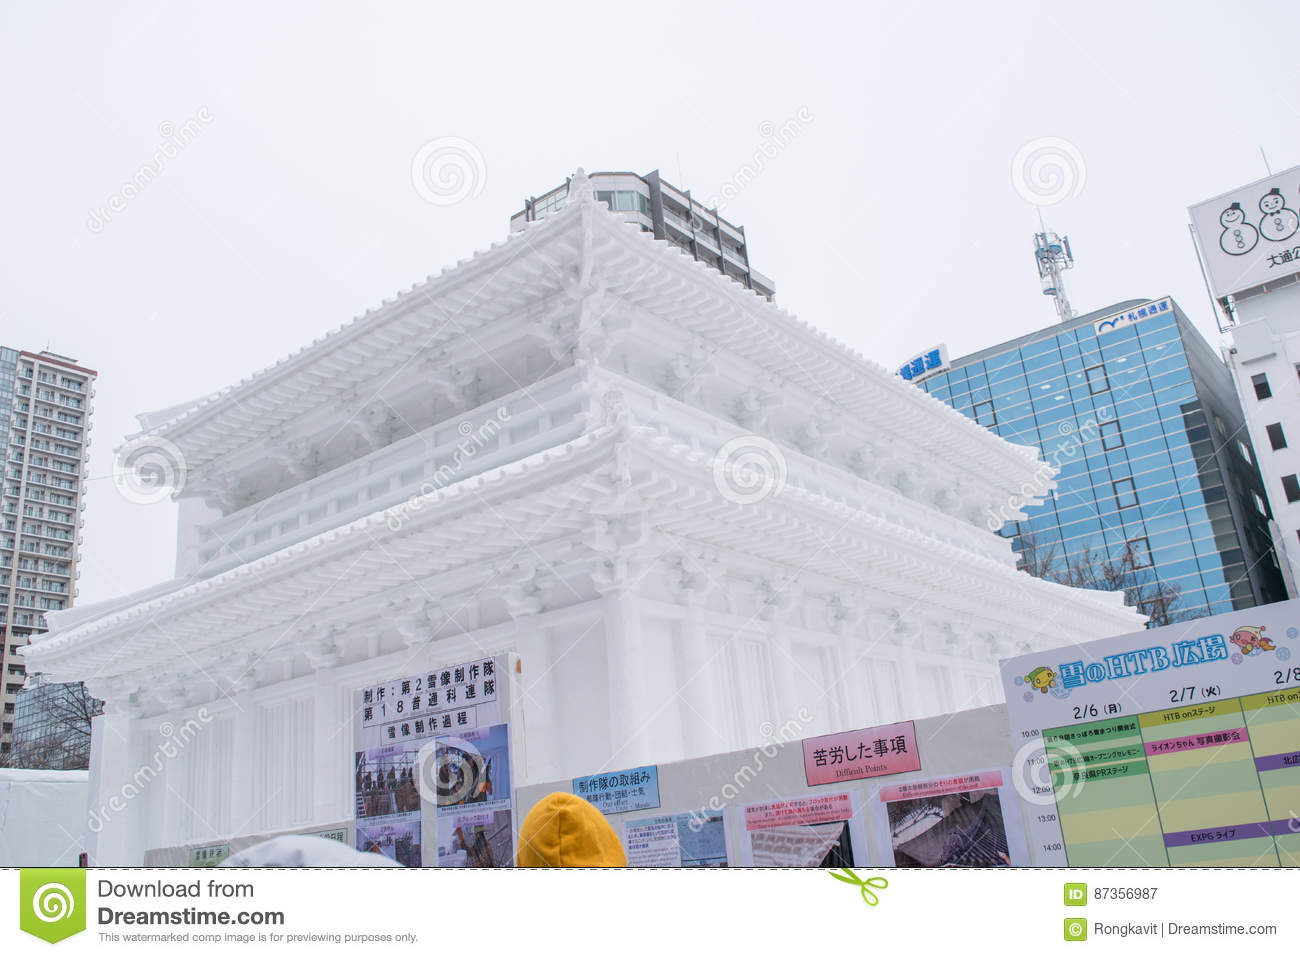 Sapporo, Japan - February 2017: The 68th Sapporo Snow Festival at Odori Park